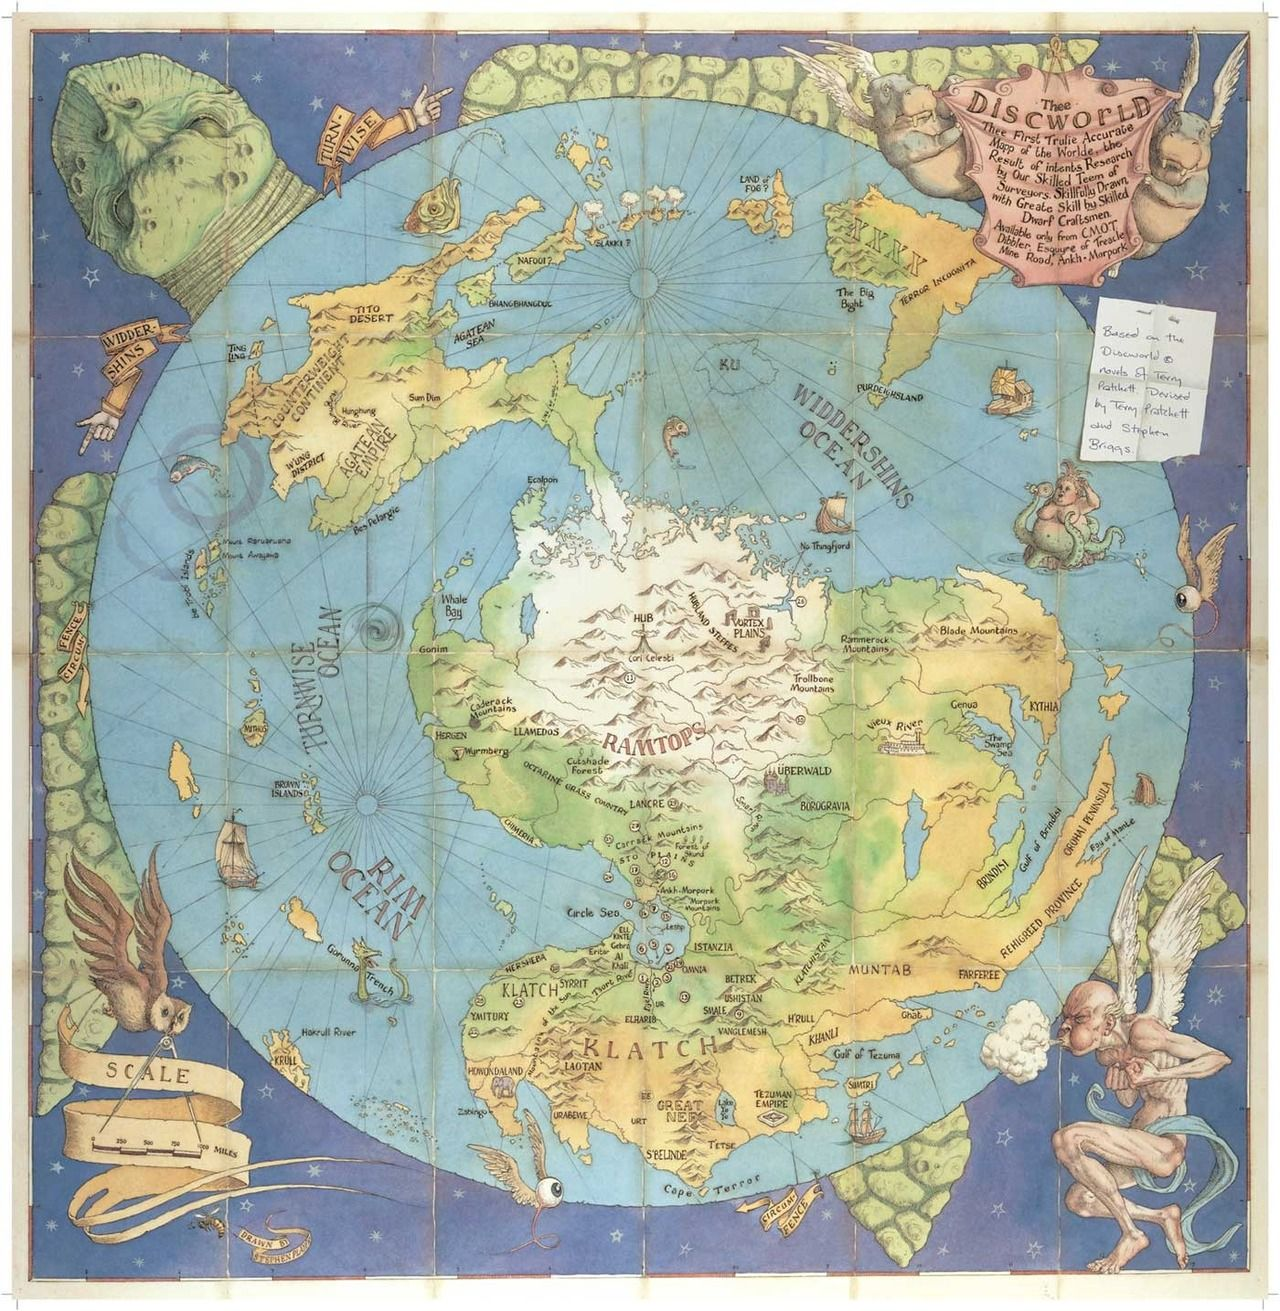 Discover ideas about Discworld Game - Pinterest